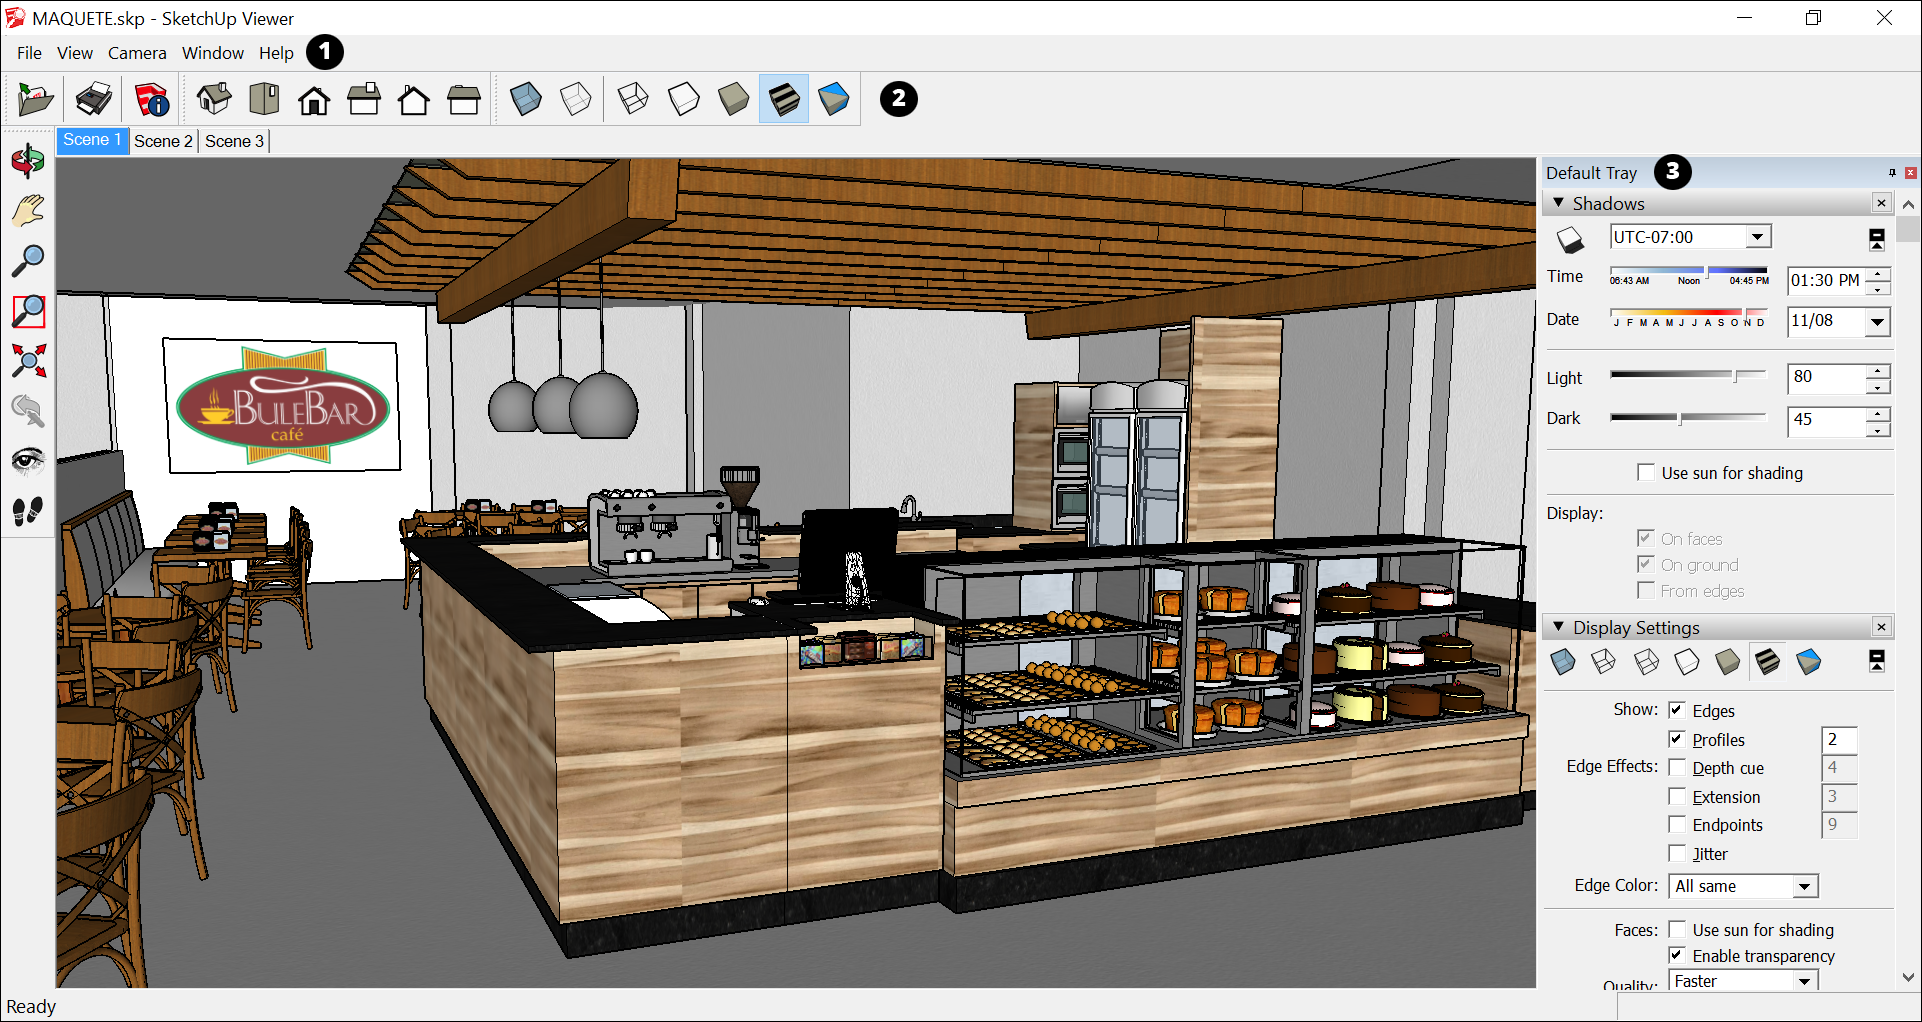 SketchUp Desktop Viewer in Microsoft Windows